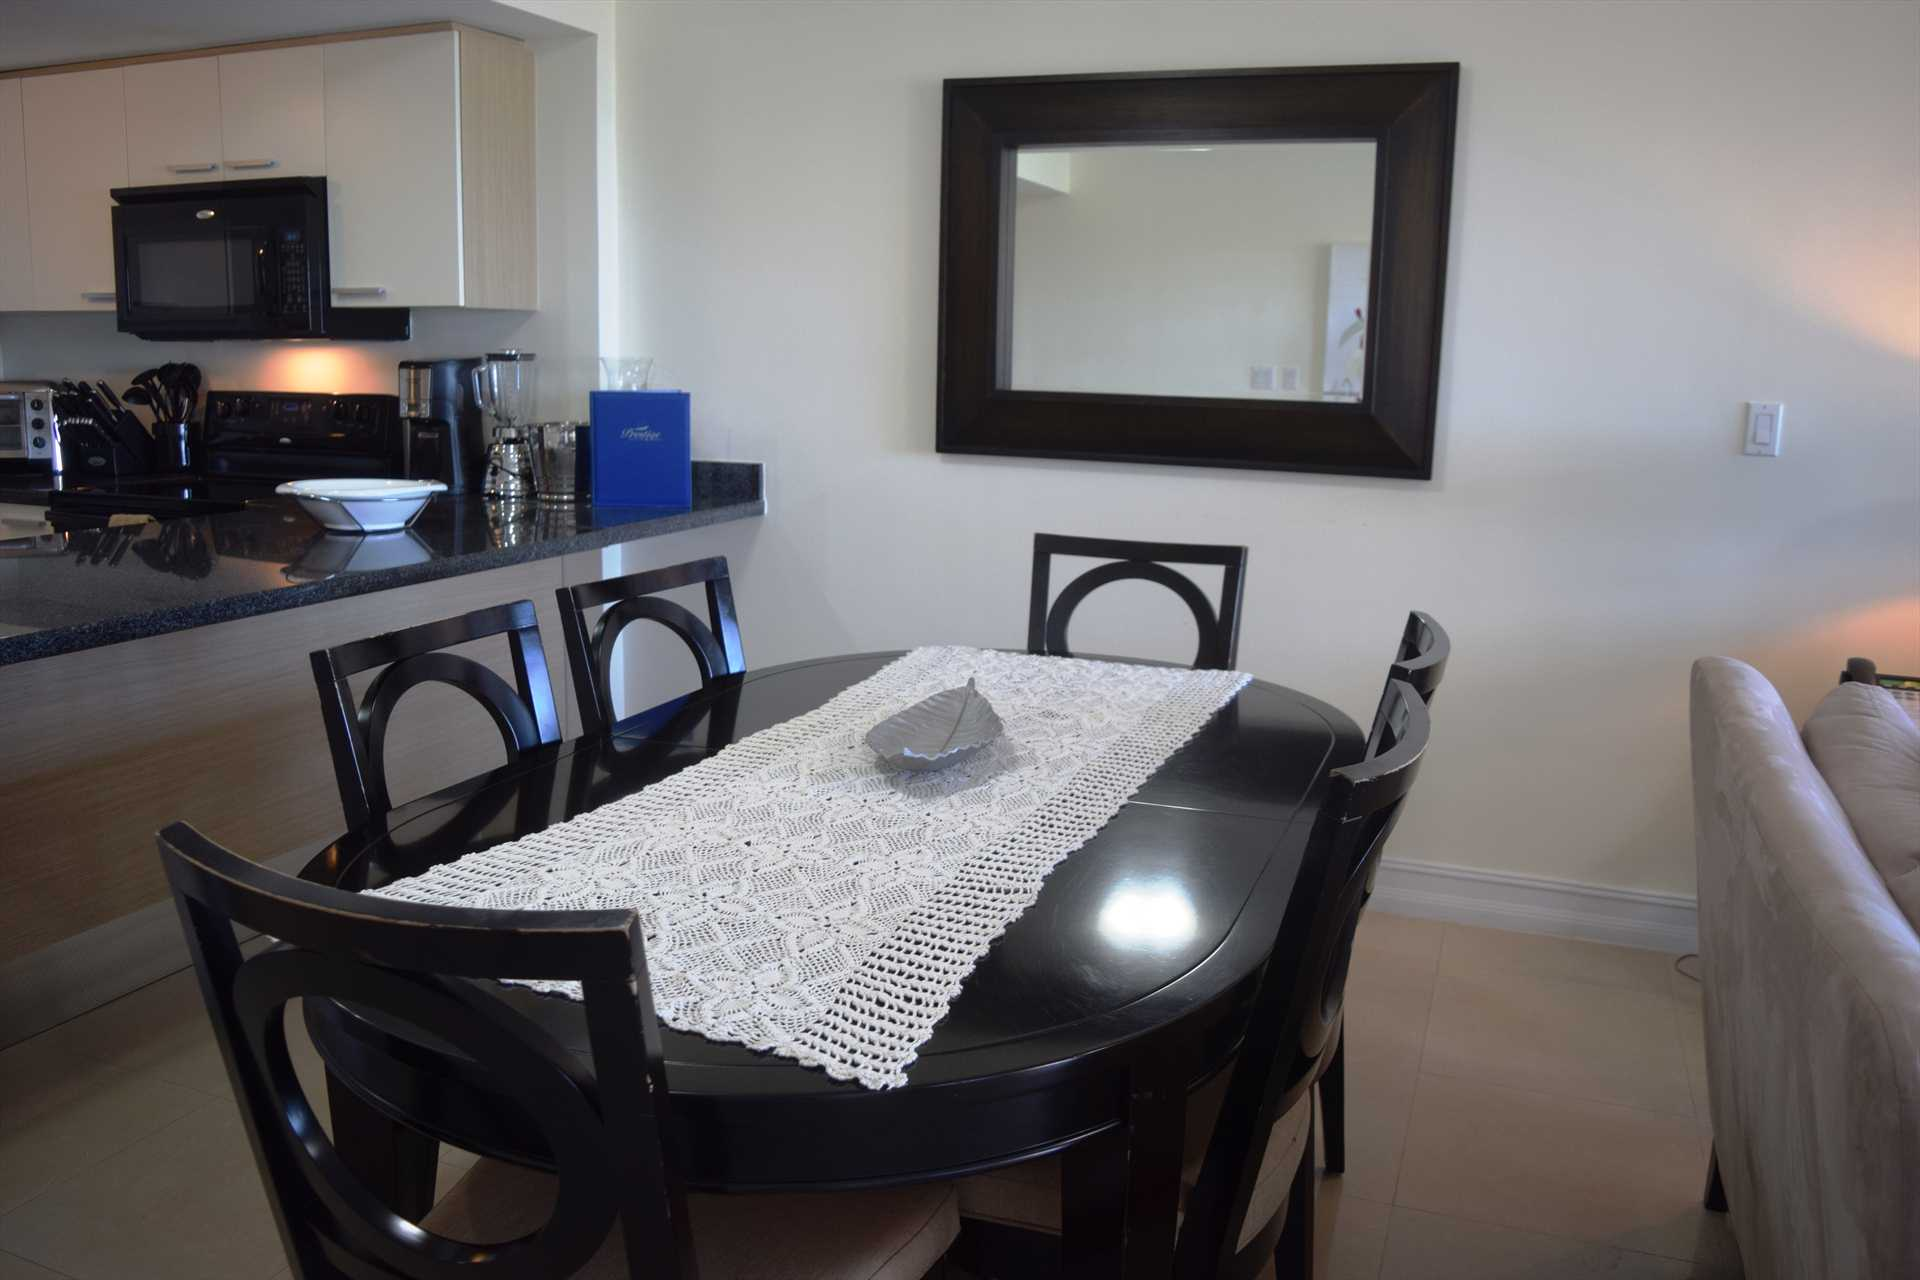 Dining area with 6-seat dining table